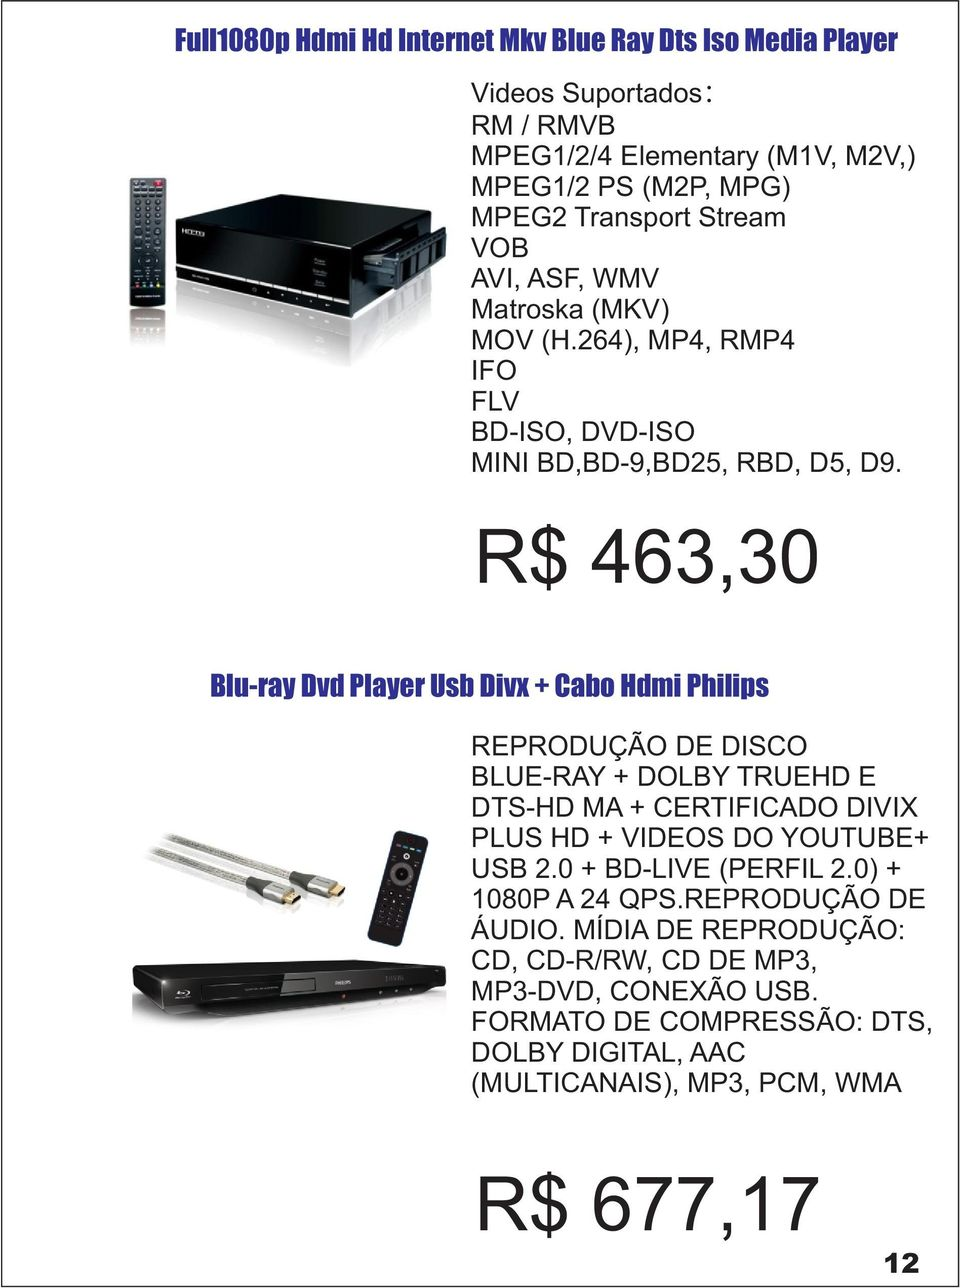 R$ 463,30 Blu-ray Dvd Player Usb Divx + Cabo Hdmi Philips REPRODUÇÃO DE DISCO BLUE-RAY + DOLBY TRUEHD E DTS-HD MA + CERTIFICADO DIVIX PLUS HD + VIDEOS DO YOUTUBE+ USB